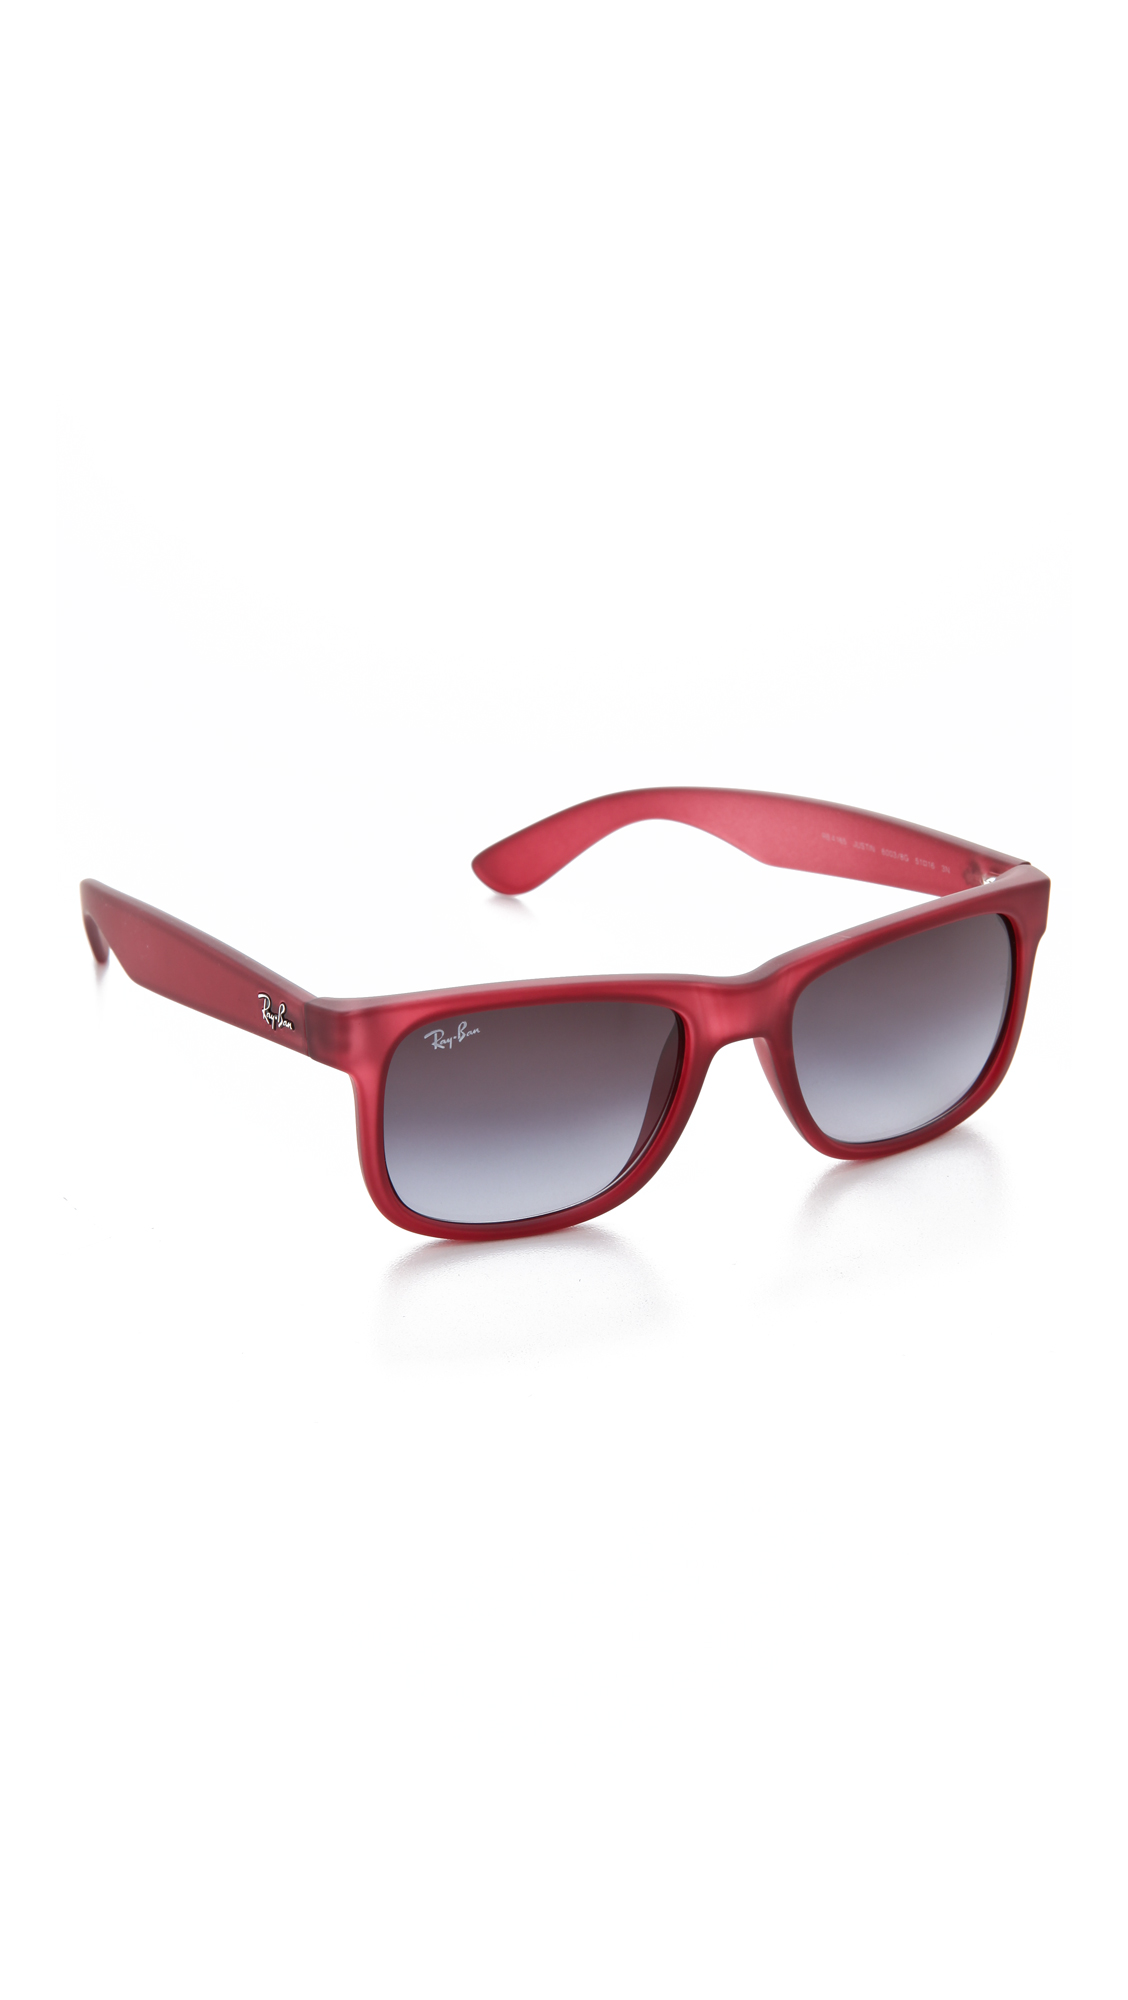 6a664aaa45 Ray Ban Justin Sunglasses For Sale « Heritage Malta